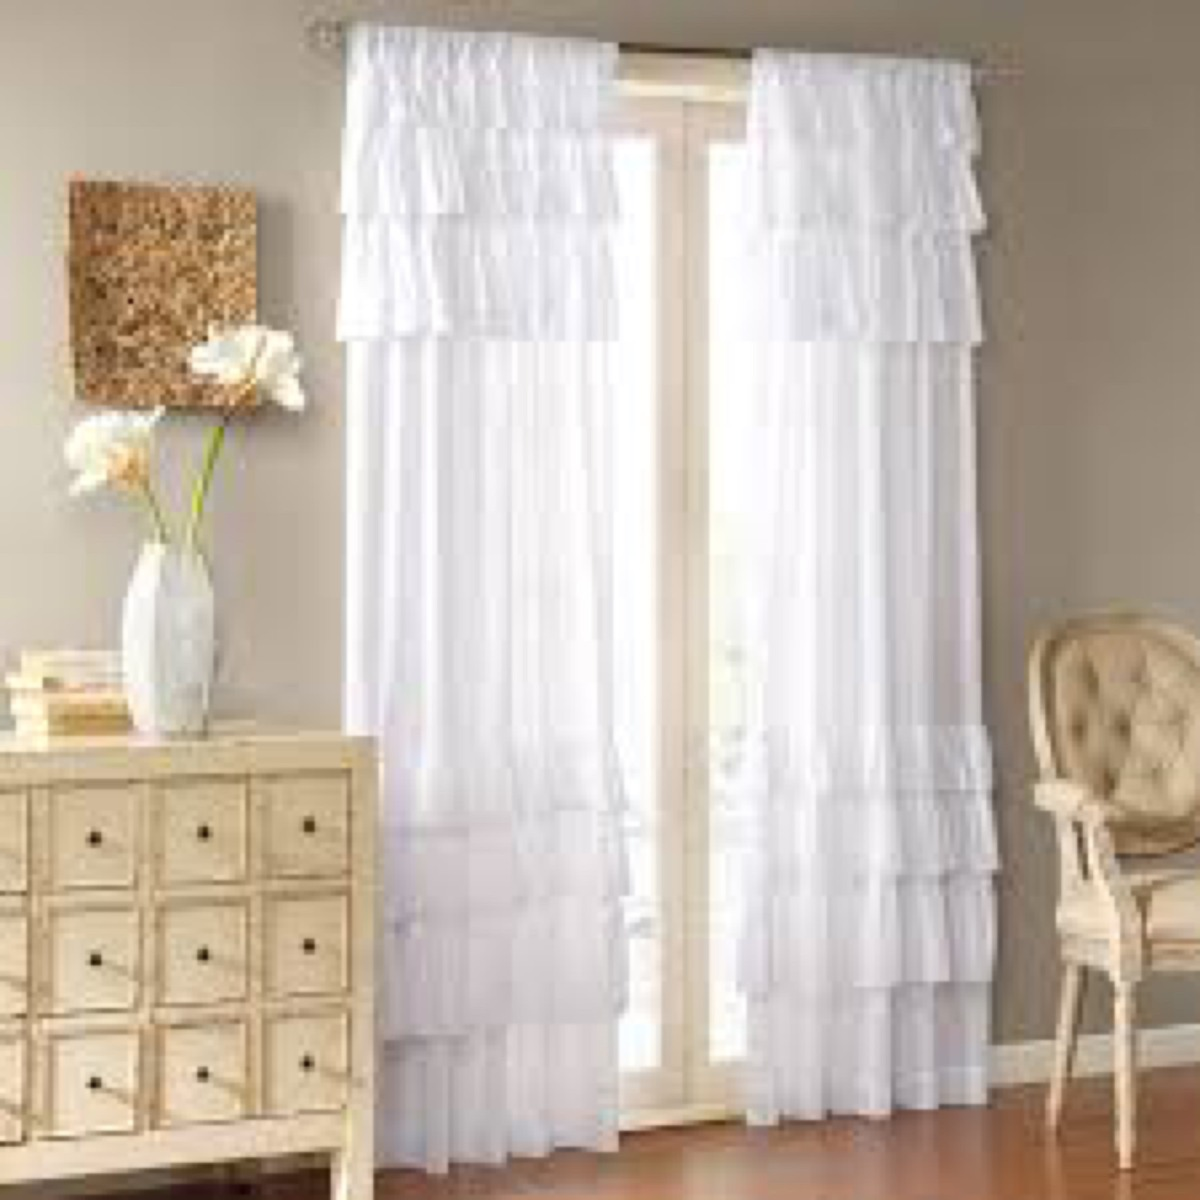 Cortinas vintage shubby chic 1 en mercado libre for Cortinas vintage para salon